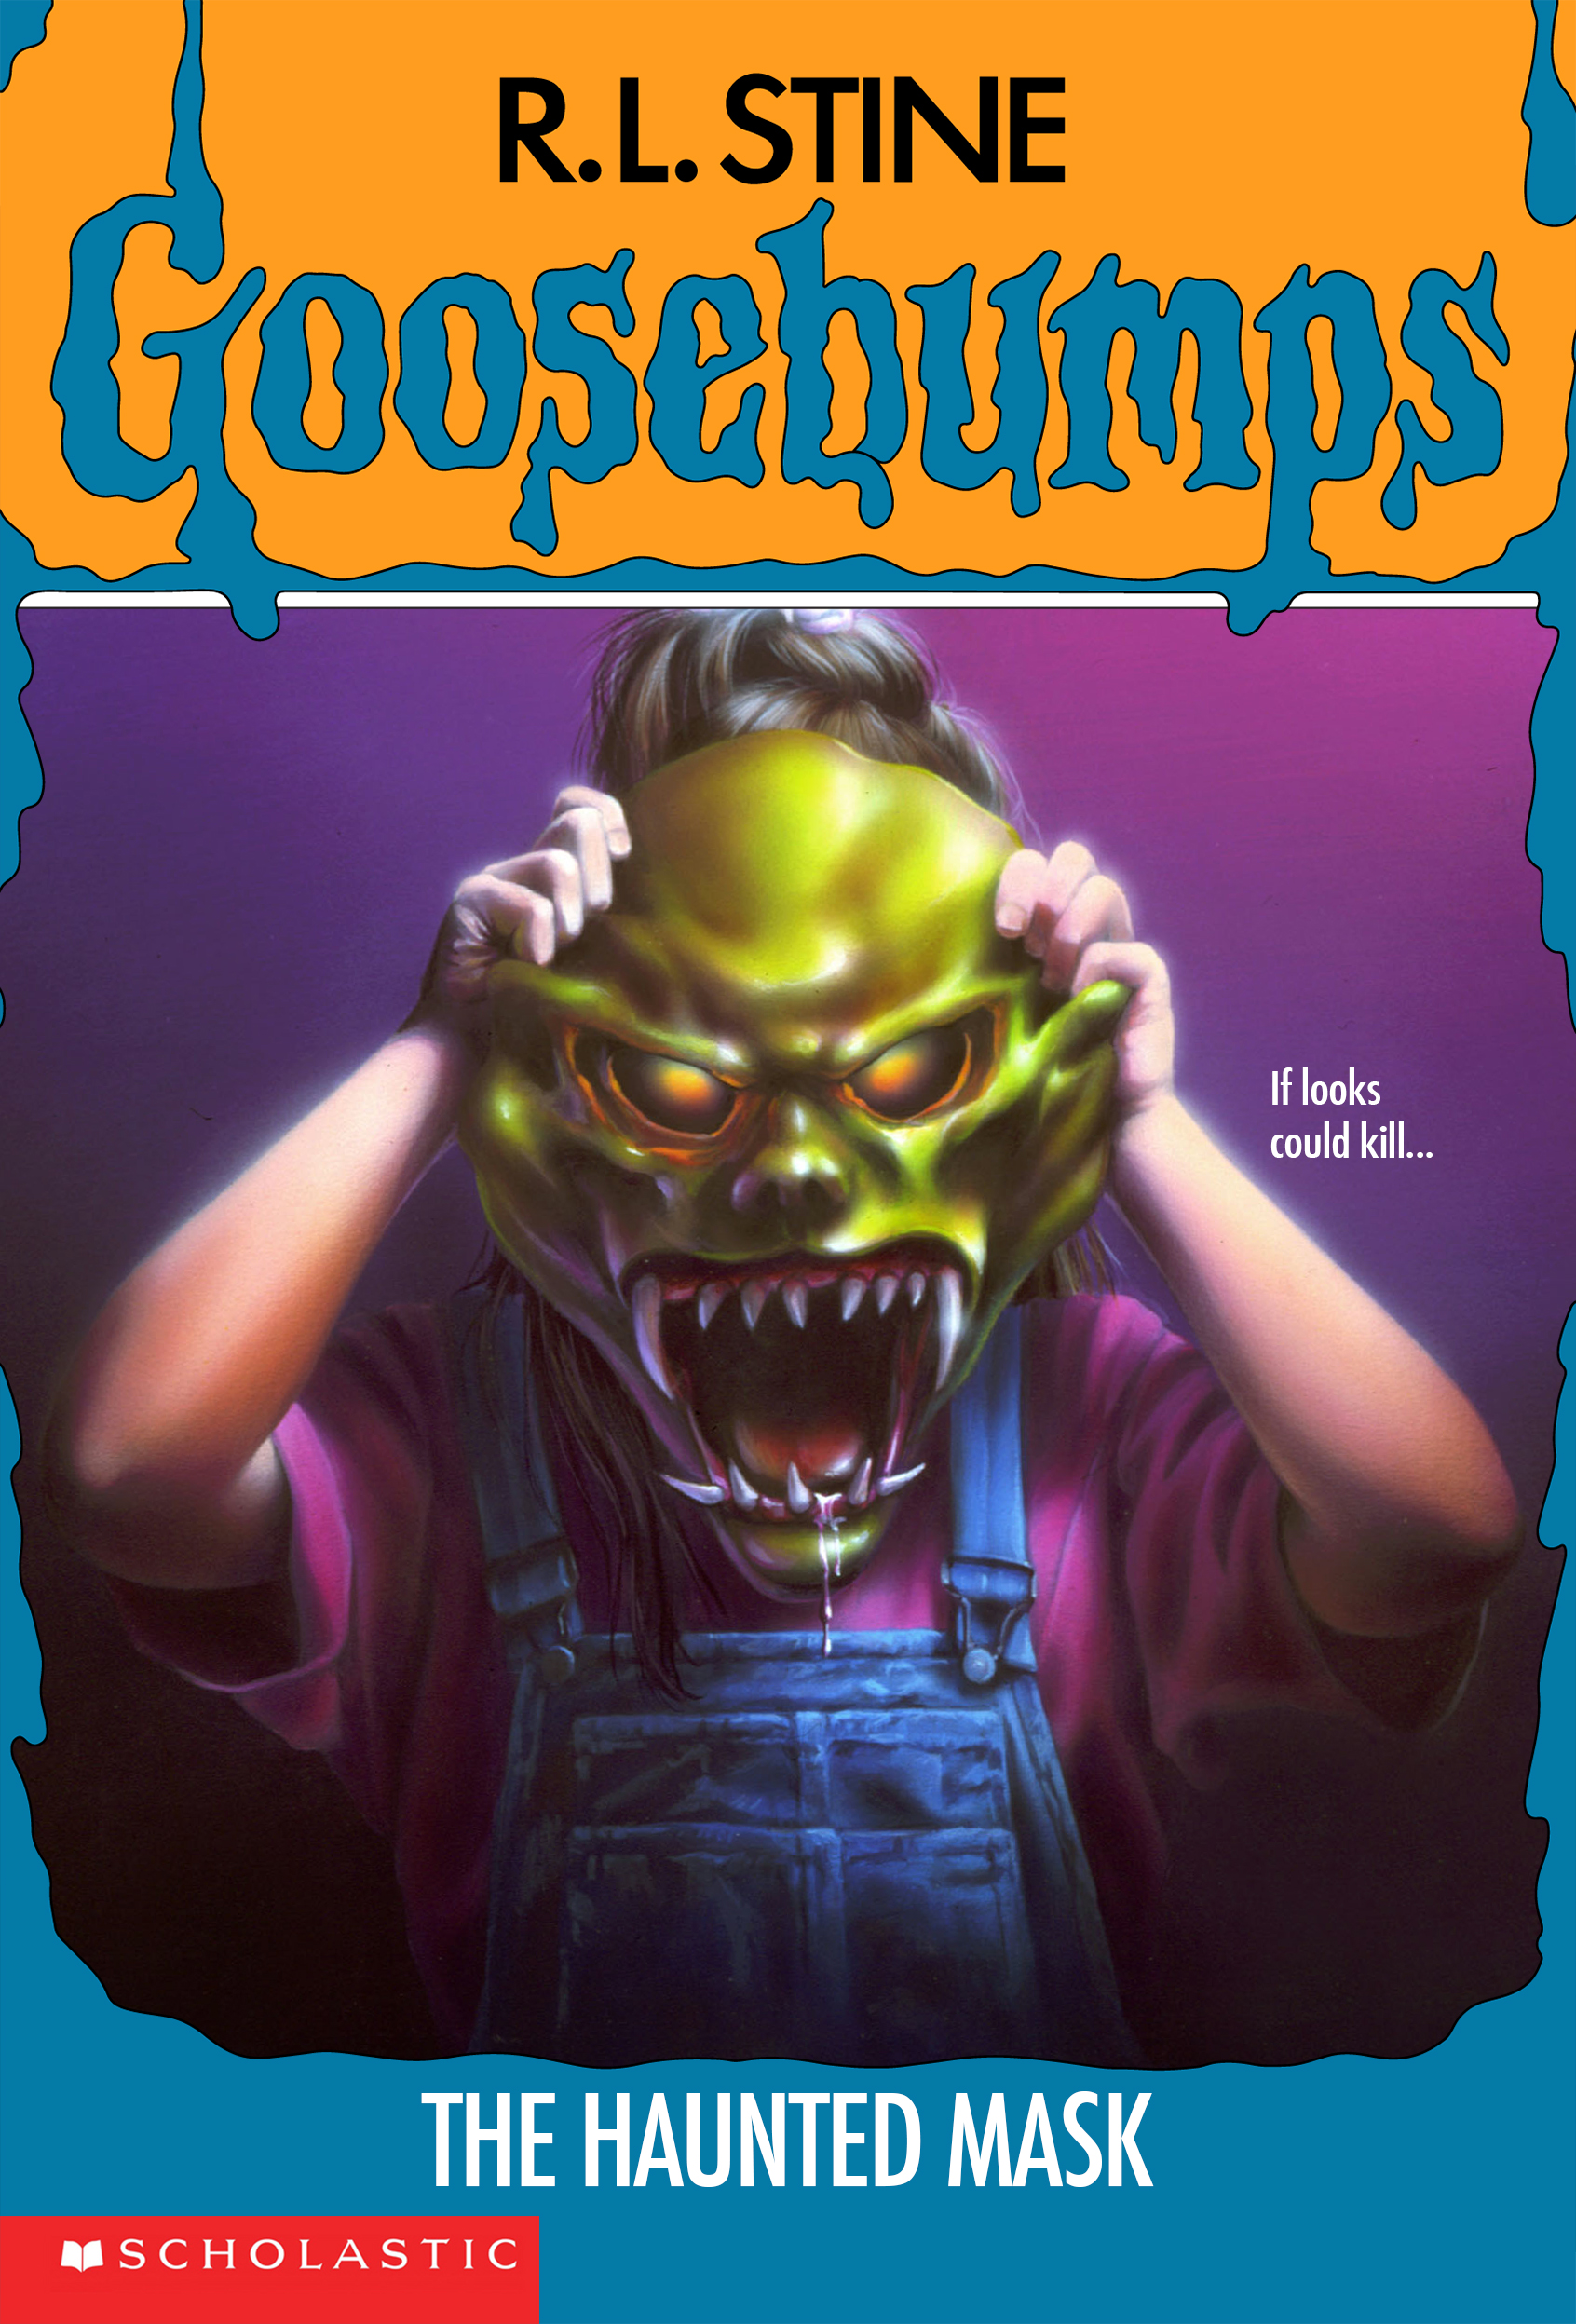 Goosebumps Book Cover Template ~ Category pages that need higher quality images